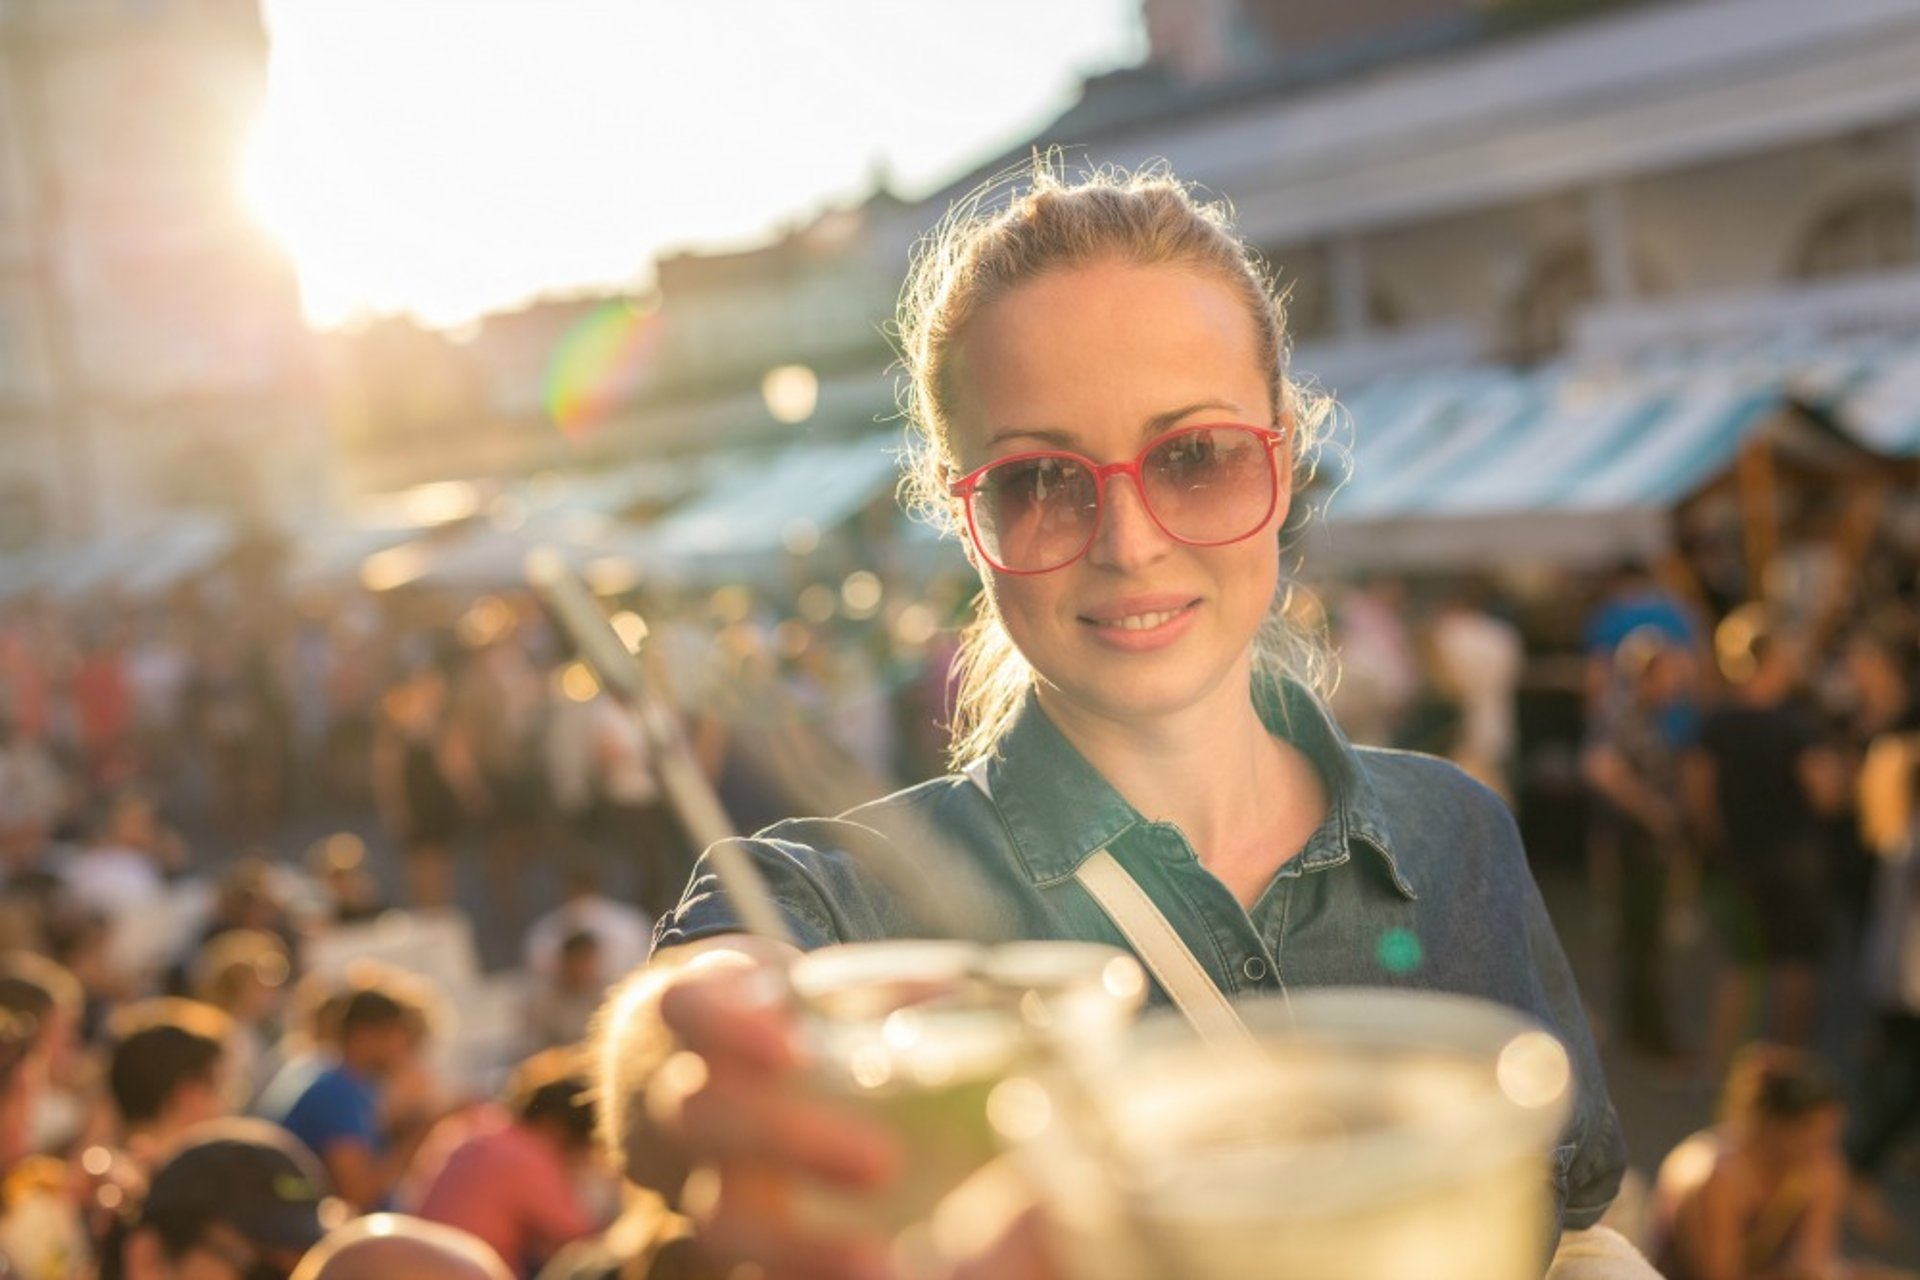 Woman at crowded venue reaching for cold drink.